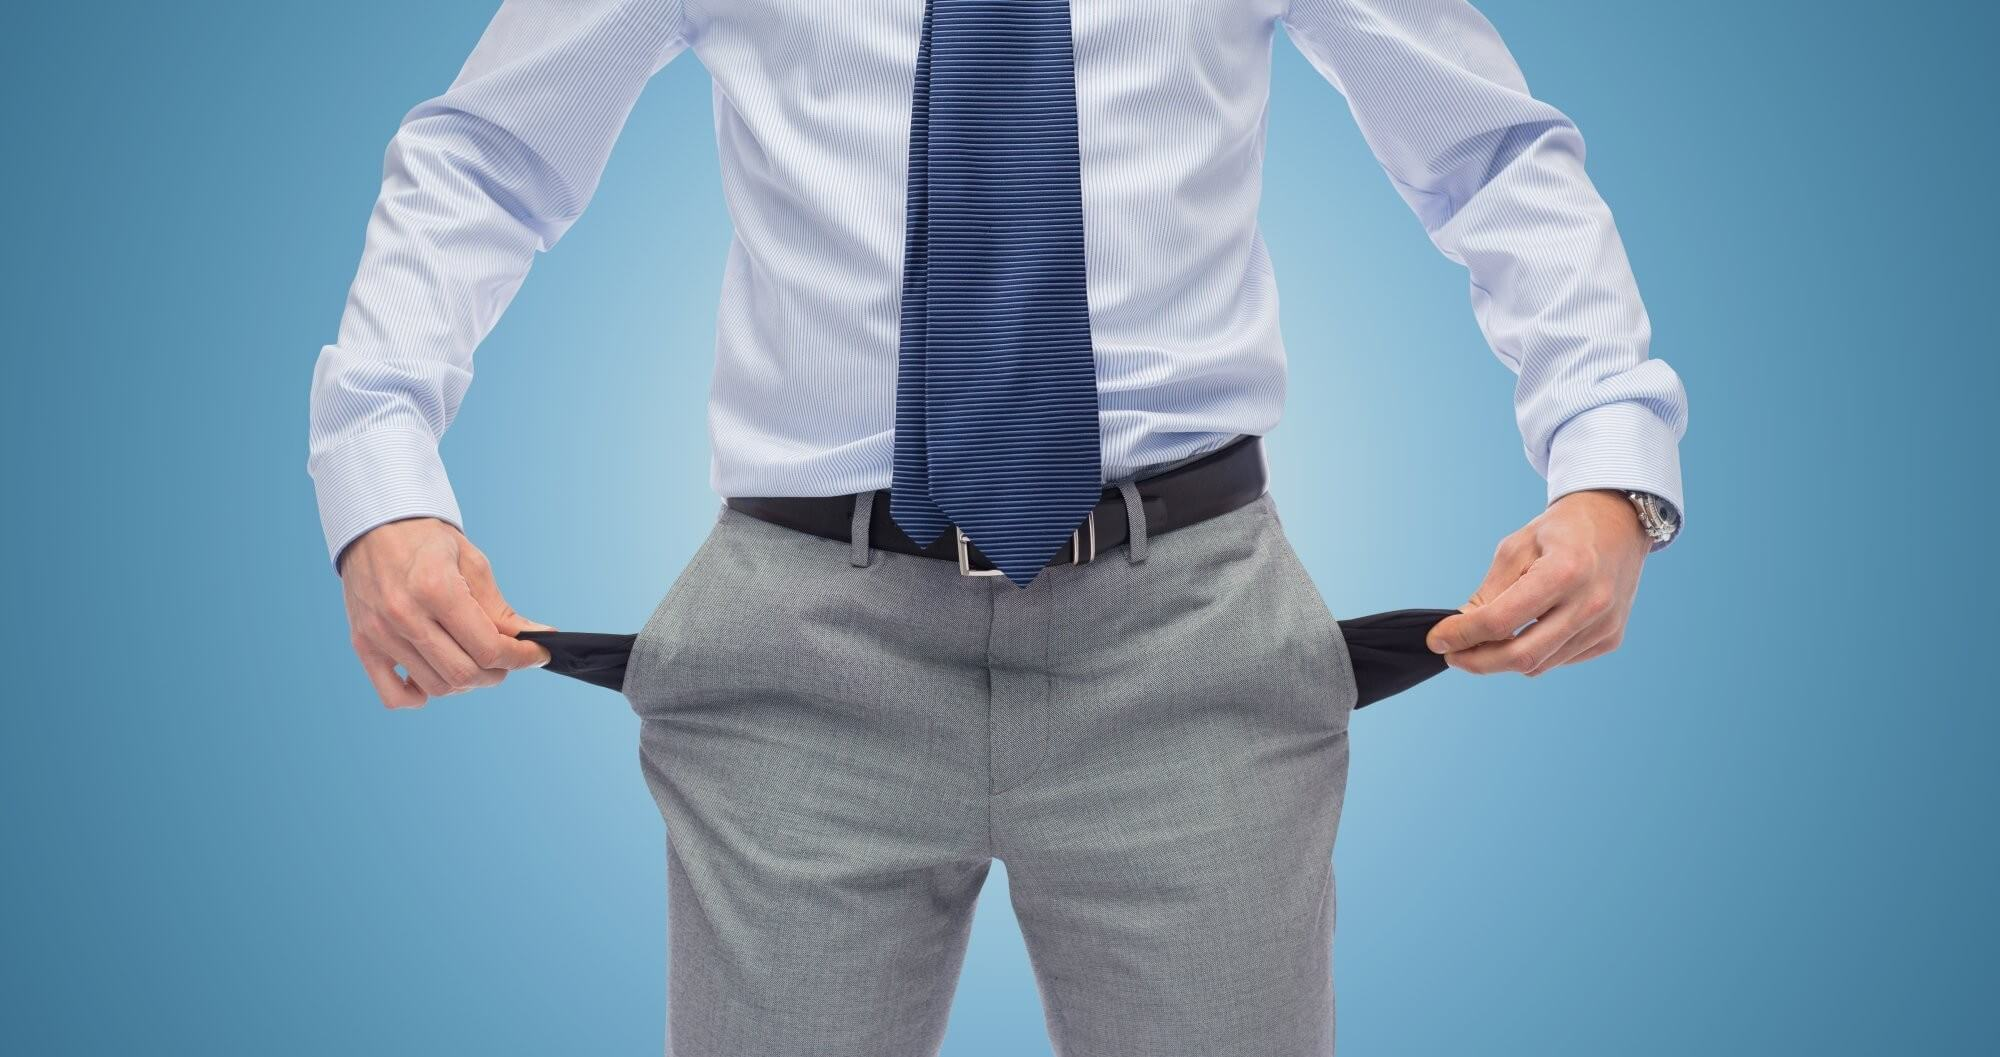 Six Reasons You're Blowing Sales and Losing Money